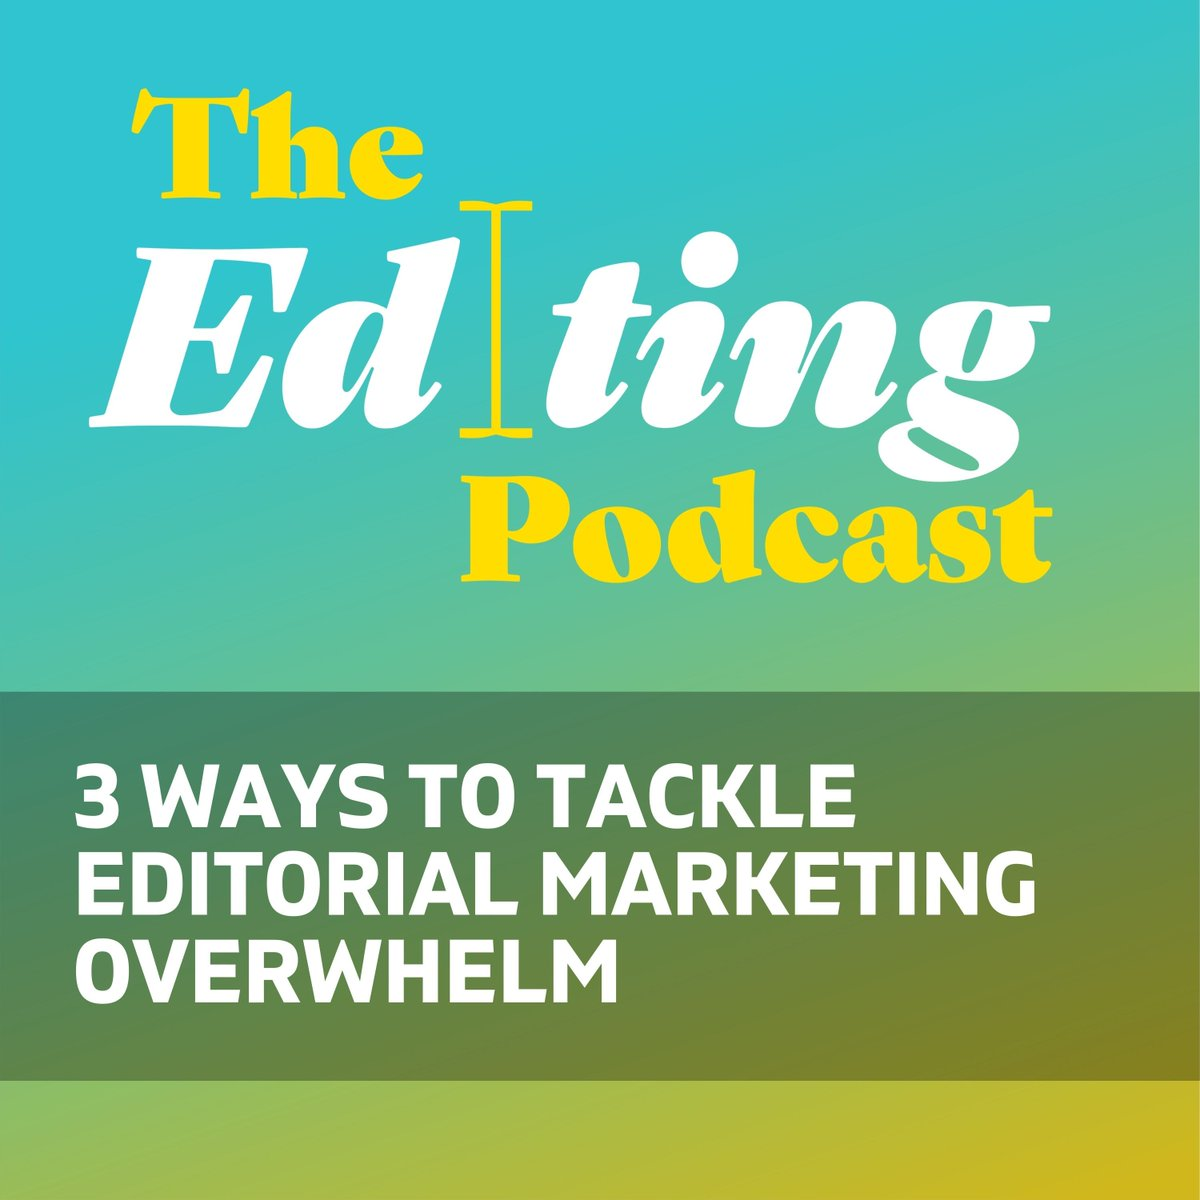 NEW on The Editing Podcast:🎙️ Me and Cowle are chewing the fat again. This time its about marketing for editors and proofreaders. We have 3 tips on how to overcome the fear! player.captivate.fm/episode/a7b3b0…